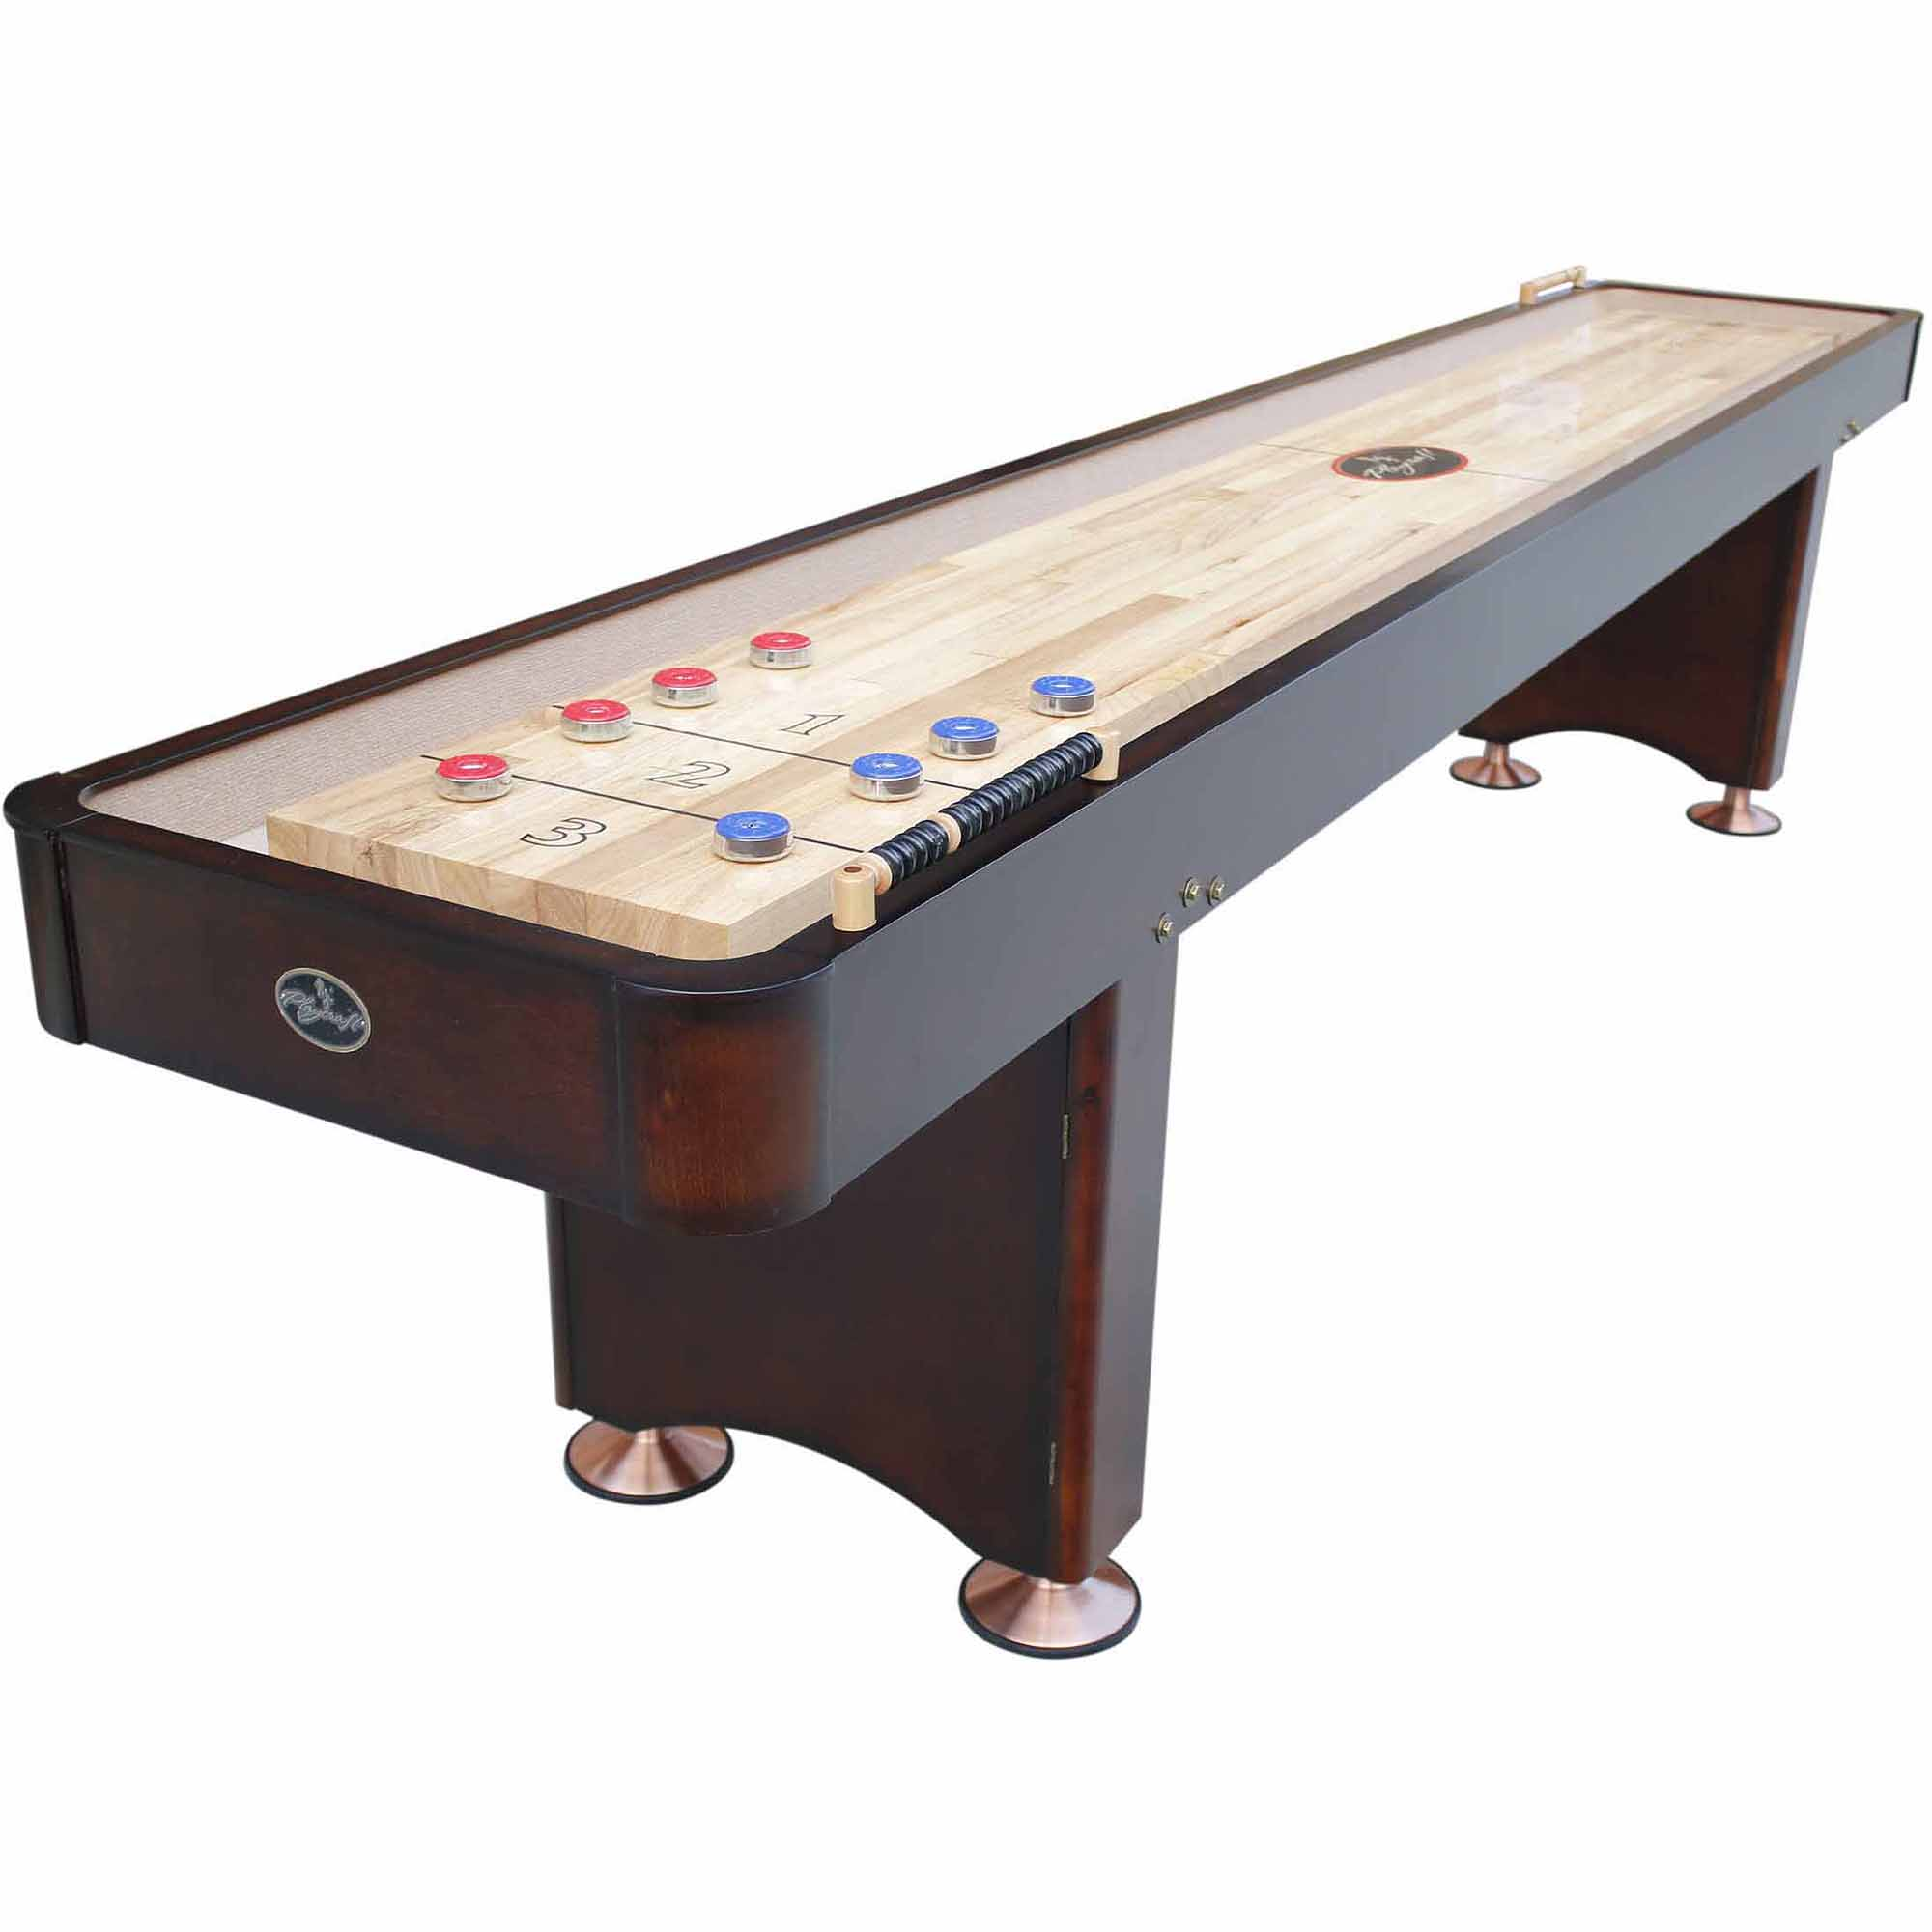 Playcraft Georgetown Espresso 12' Shuffleboard Table